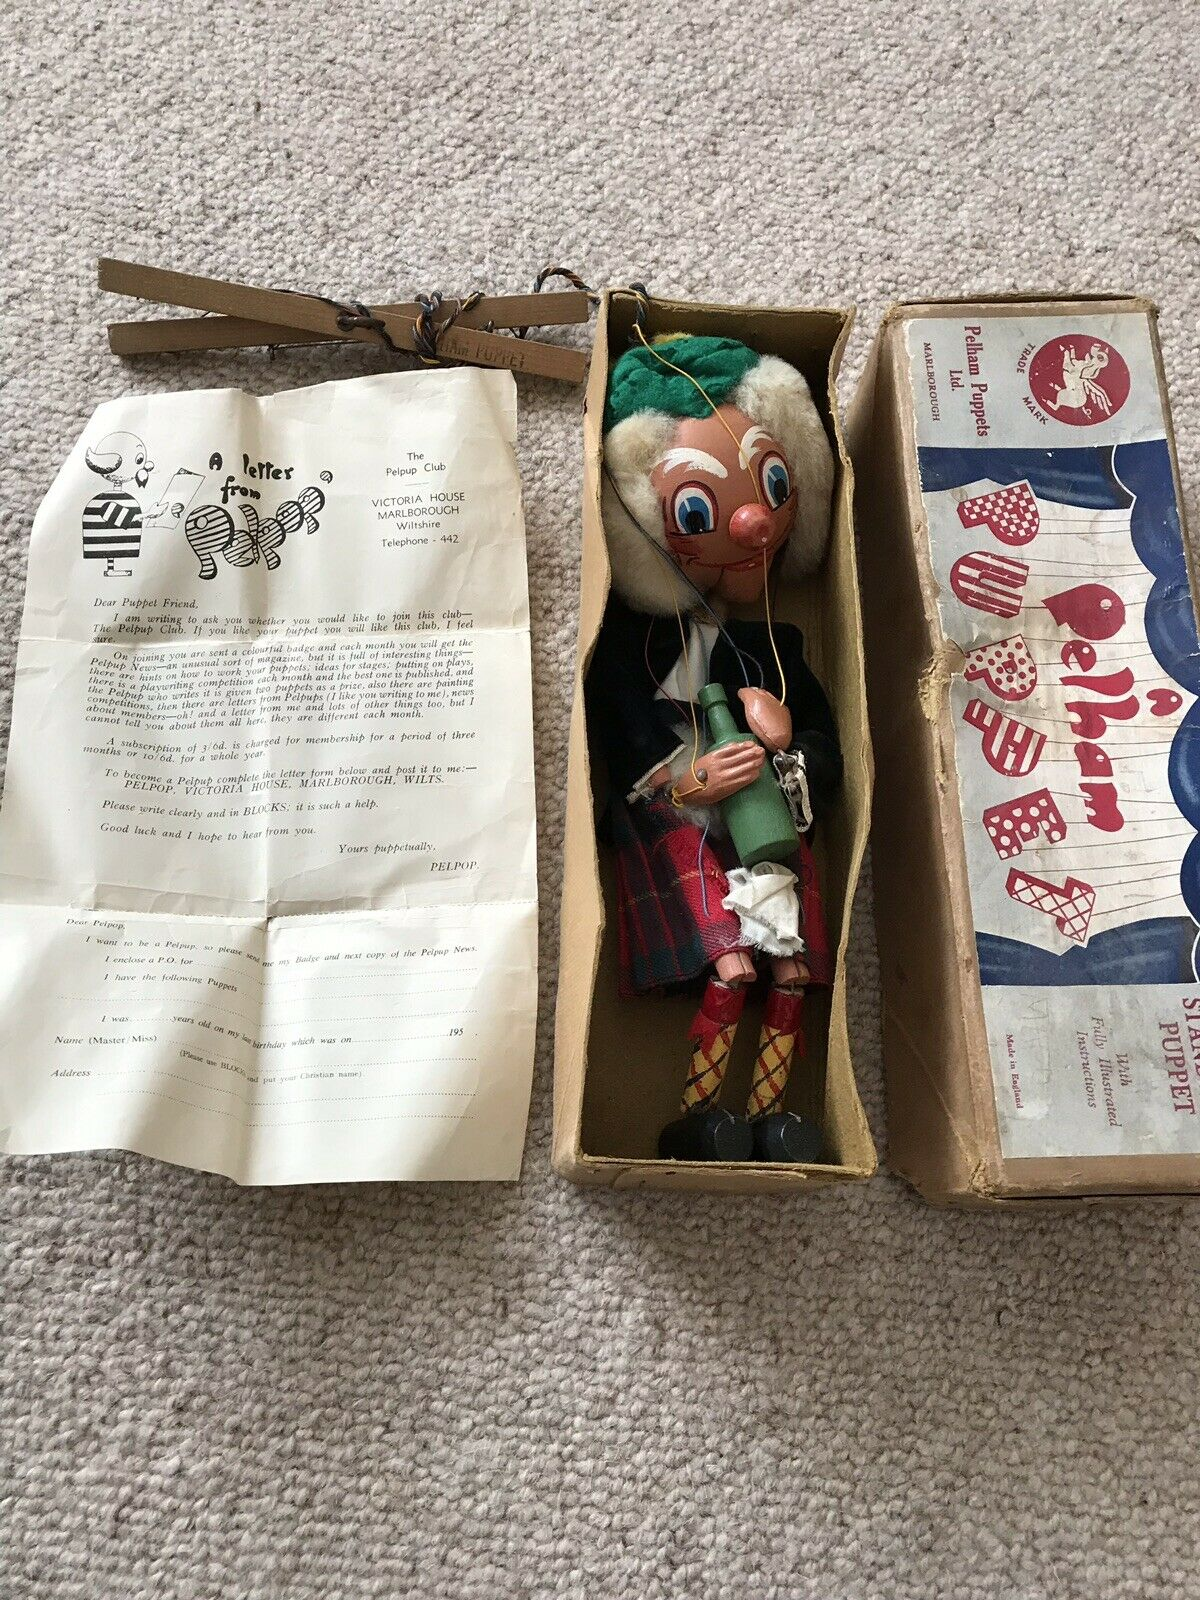 Vintage Pelham Puppet - MACBOOZLE WITH CARVED HANDS - Early Version